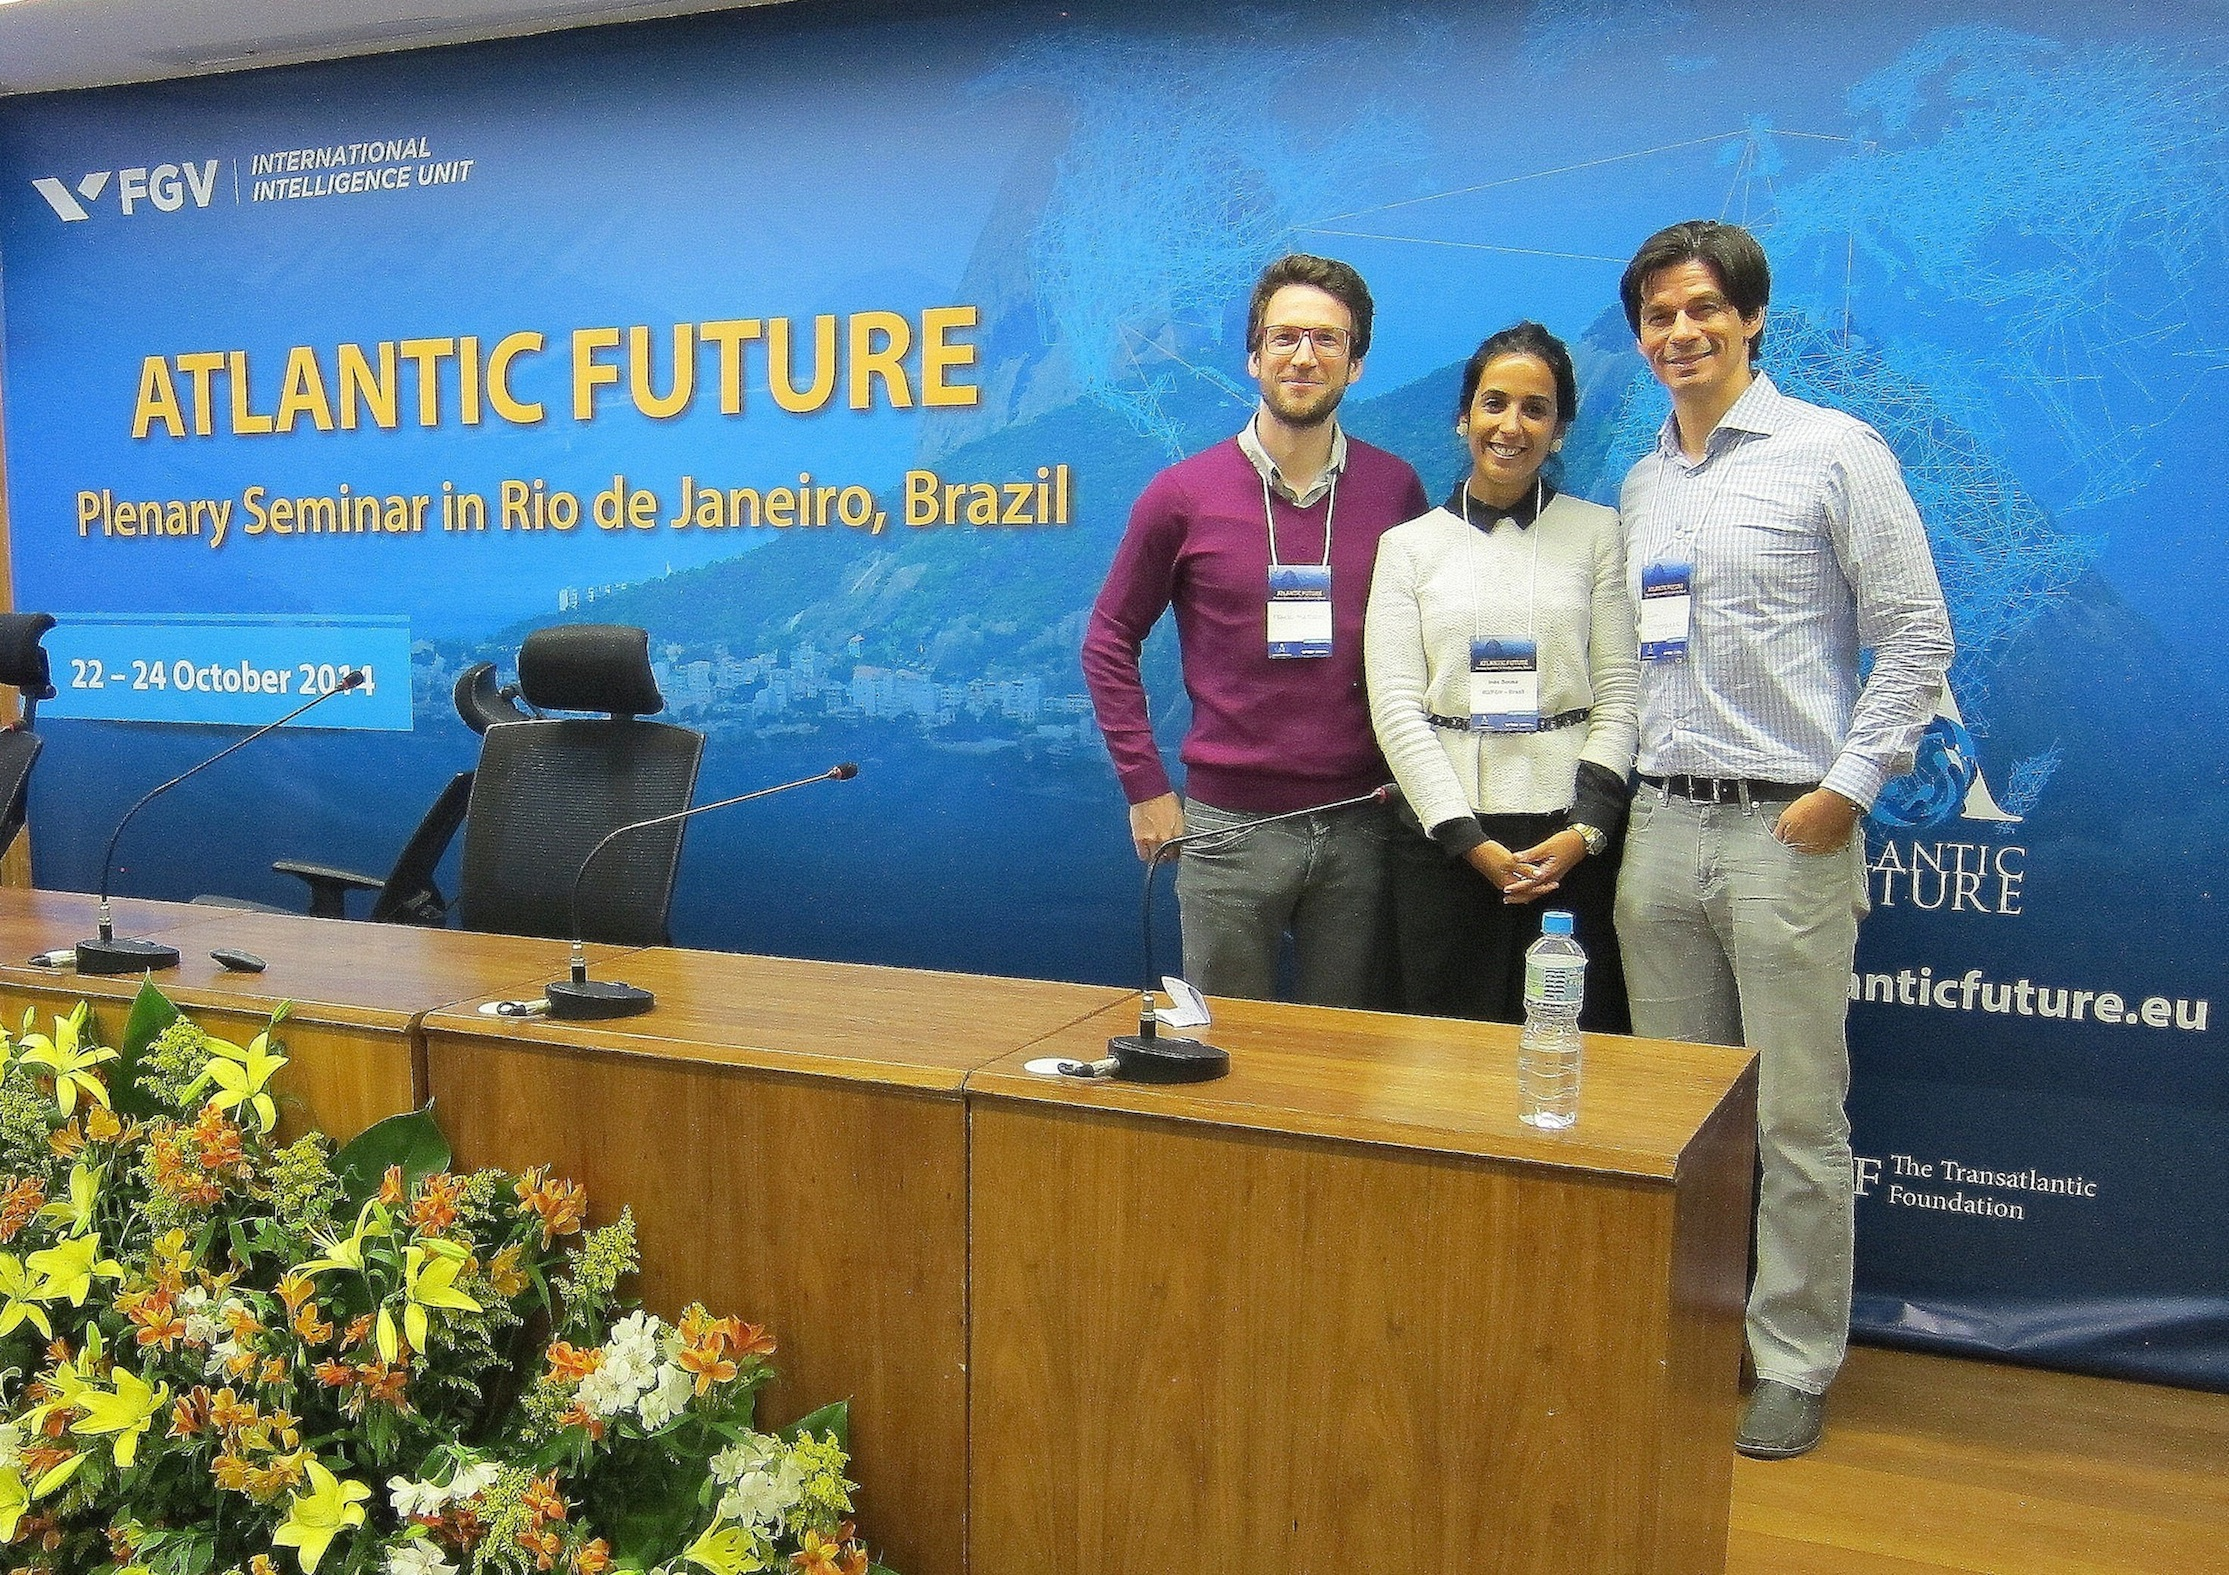 Frank Mattheis (left) and John Kotsopoulos at the ATLANTIC FUTURE second plenary meeting at FUNDAÇAO GETÚLIO VARGAS (FGV), in Rio de Janeiro (22-24 October) with meeting organiser Inês Sousa from the International Intelligence Unit of FGV.